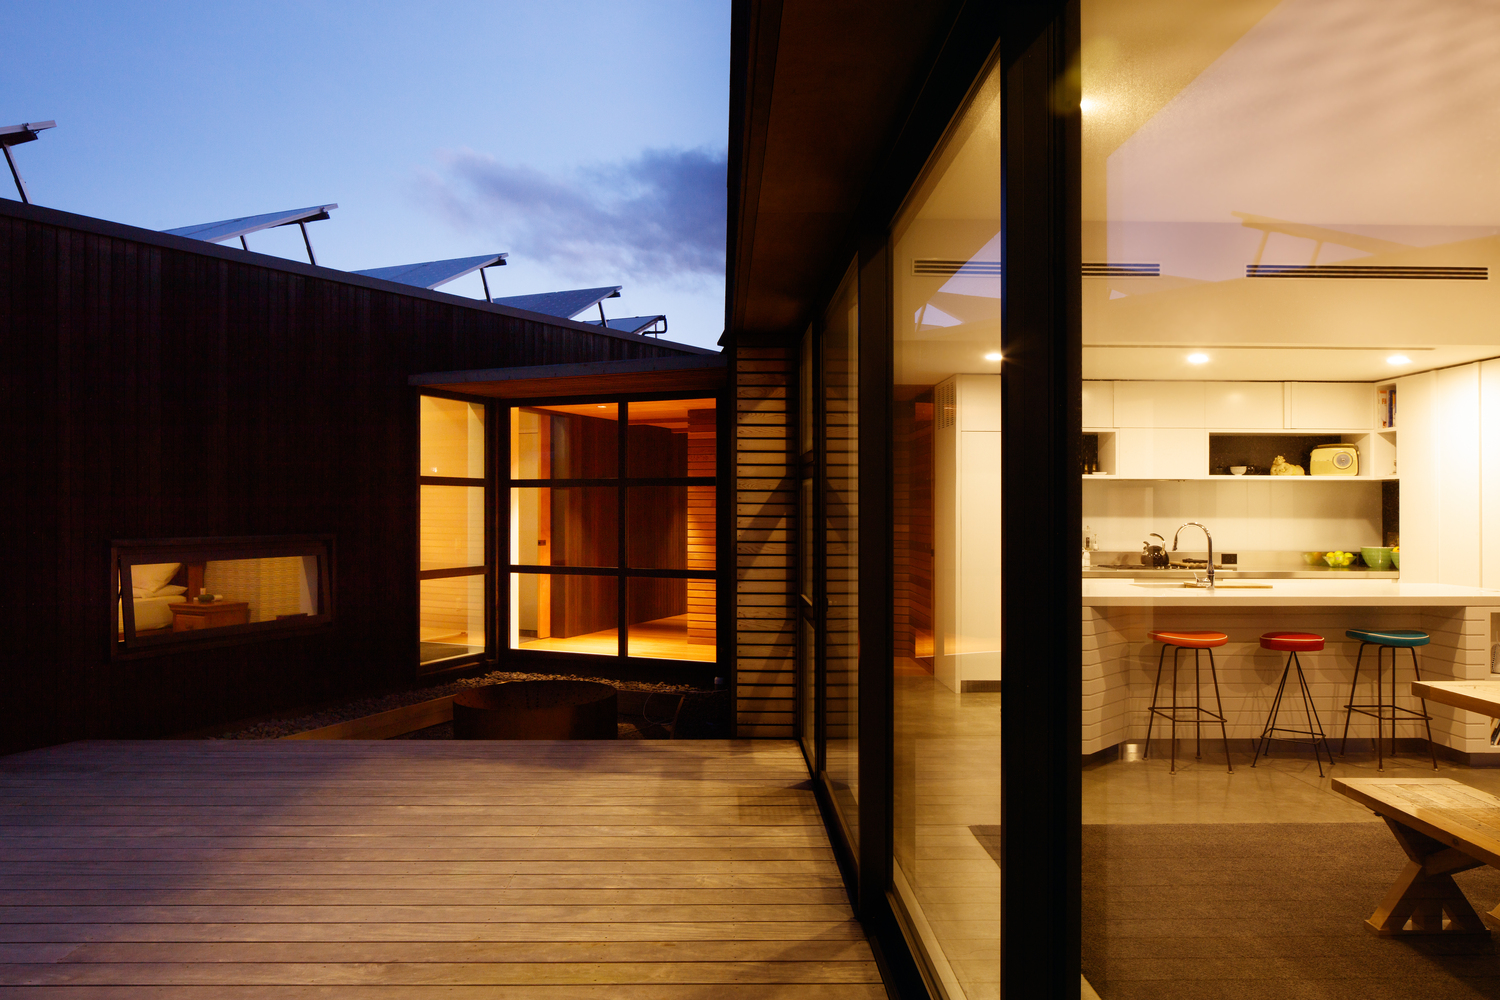 A Sheltered Courtyard Protects From This Exposed Location